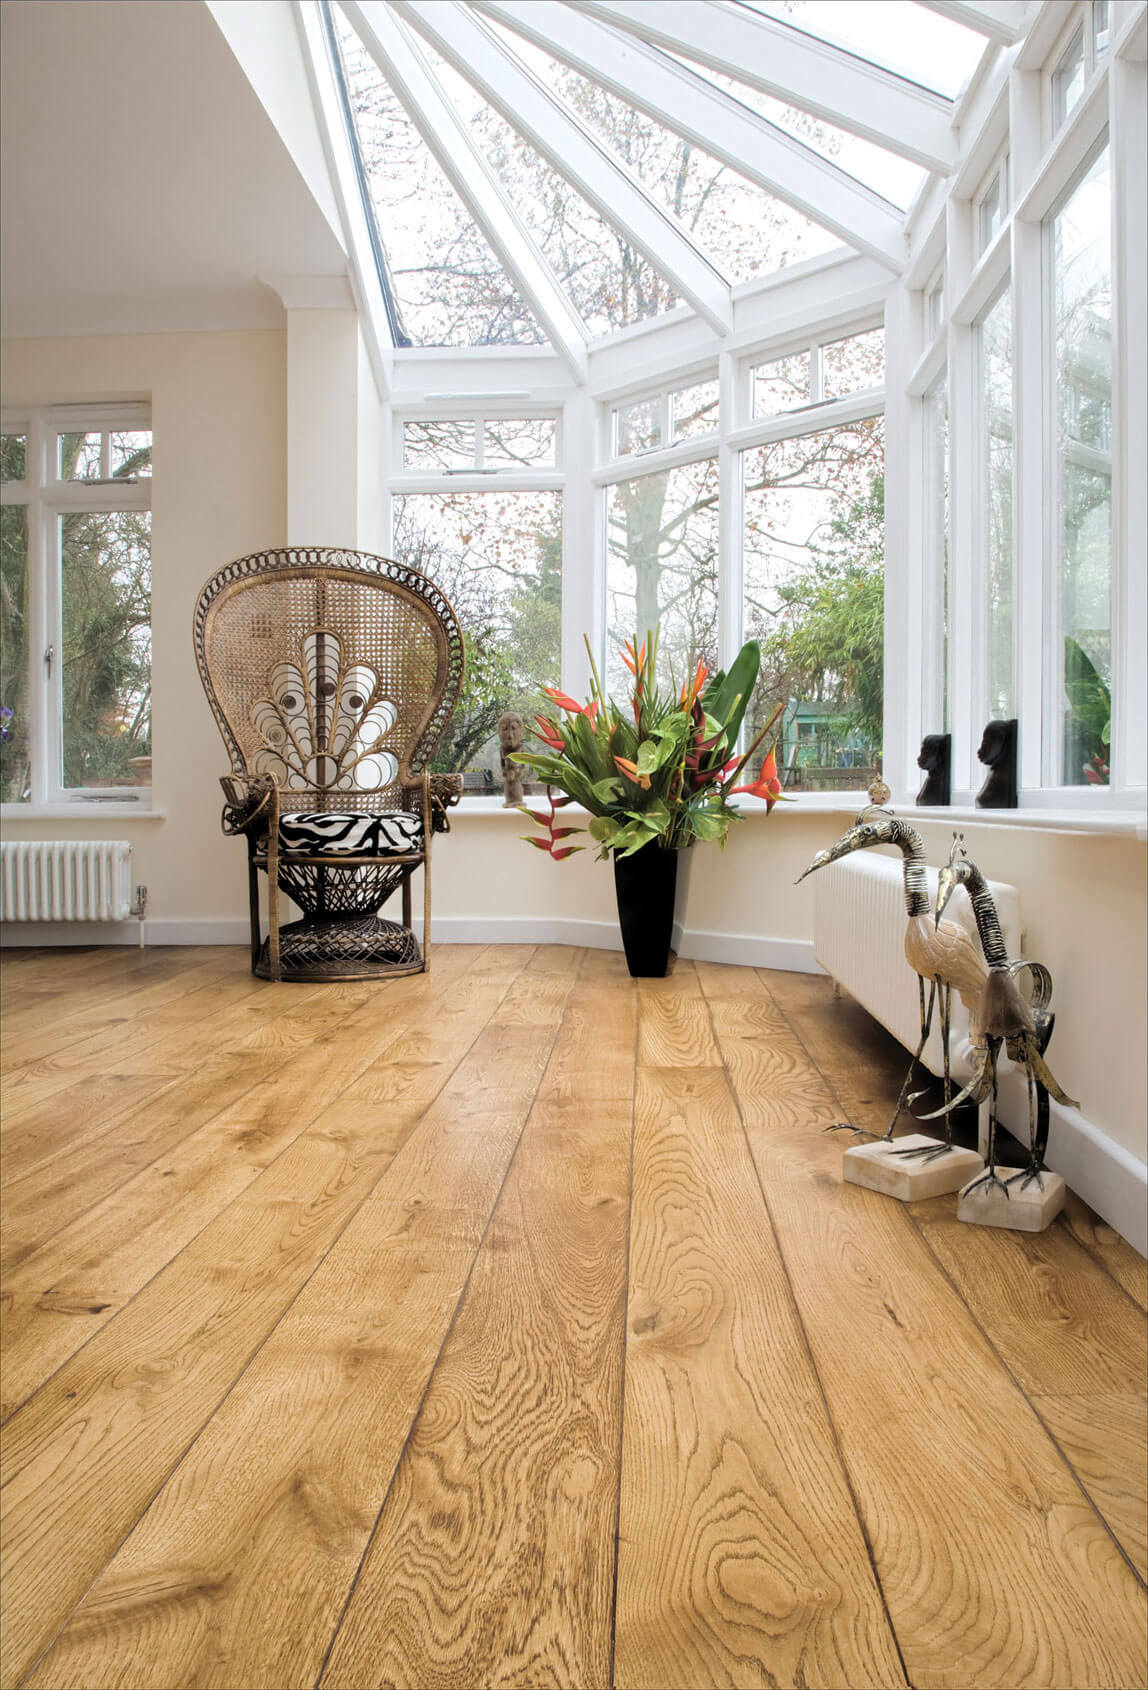 Conservatory Flooring Ideas - Solid Wood or Engineered Wooden Flooring